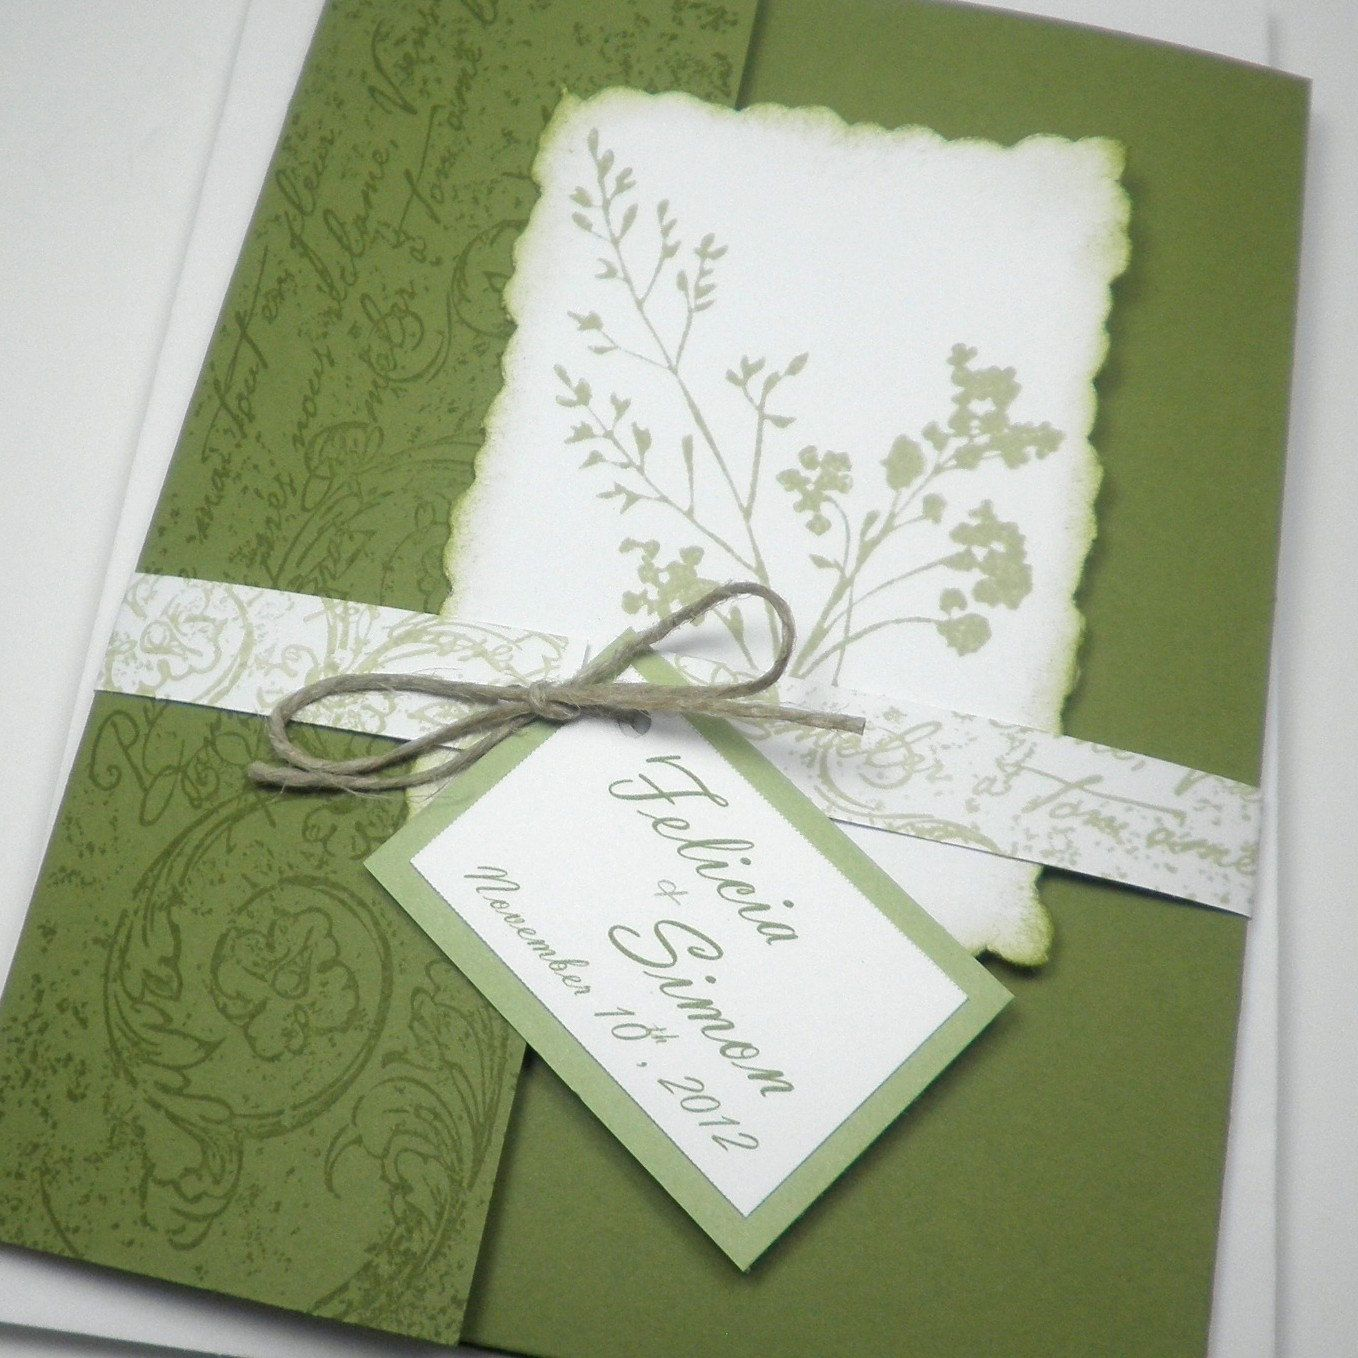 Garden Wedding Invitation Ideas garden wedding invitations and get ideas how to make your wedding invitation with prepossessing appearance 18 Find This Pin And More On Whooo Party Items Similar To Green White Garden Fabulous Floret Pocketfold Wedding Invitation